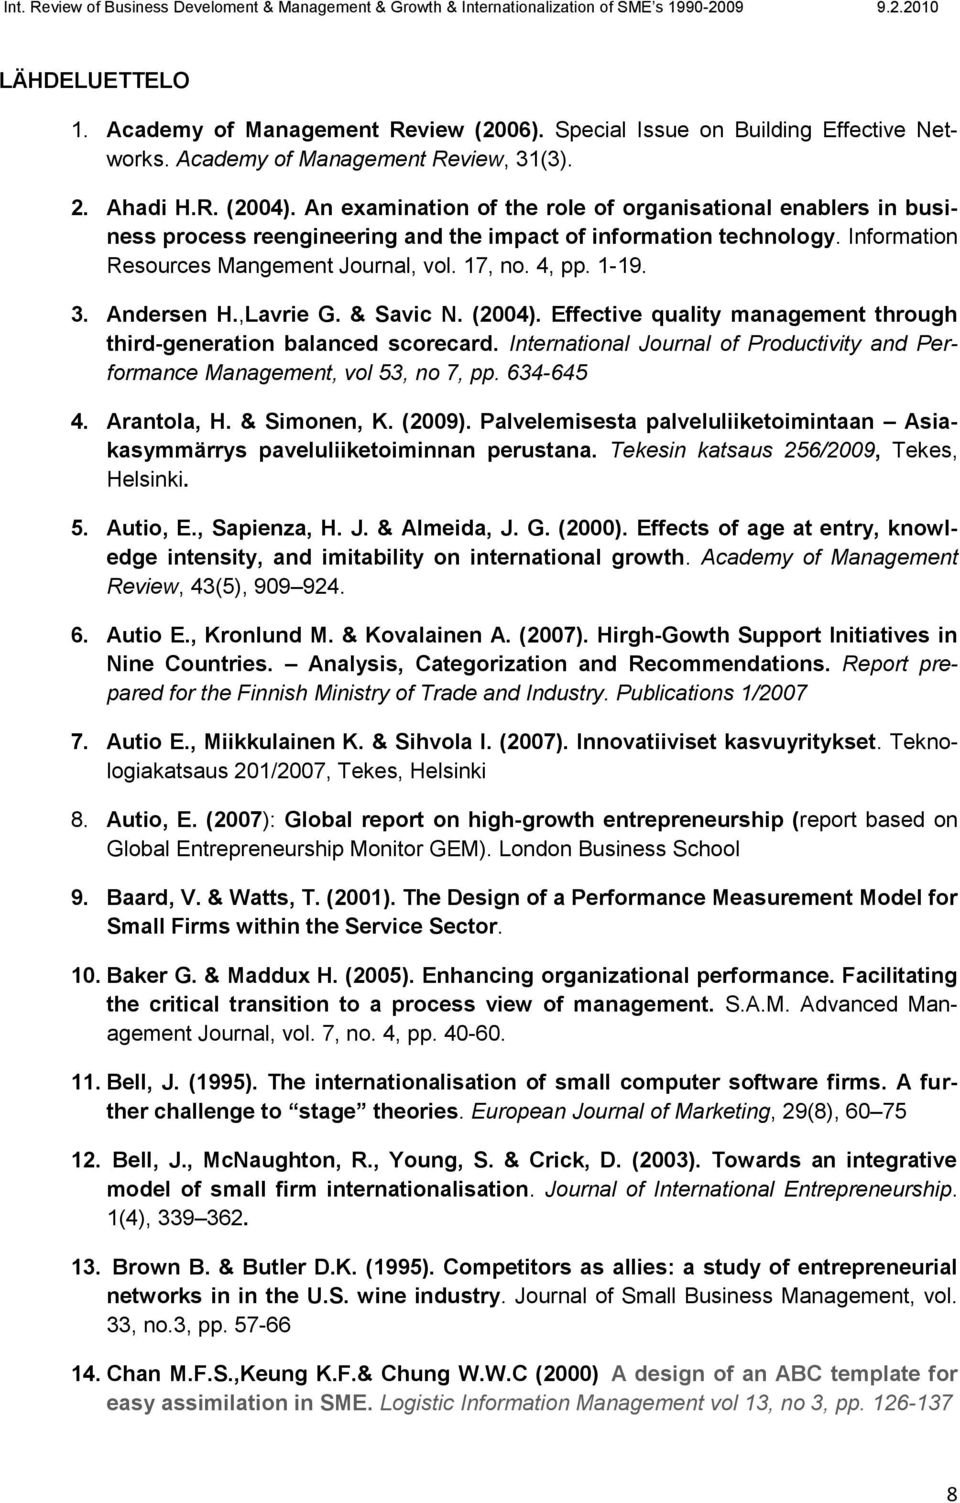 Andersen H.,Lavrie G. & Savic N. (2004). Effective quality management through third-generation balanced scorecard. International Journal of Productivity and Performance Management, vol 53, no 7, pp.